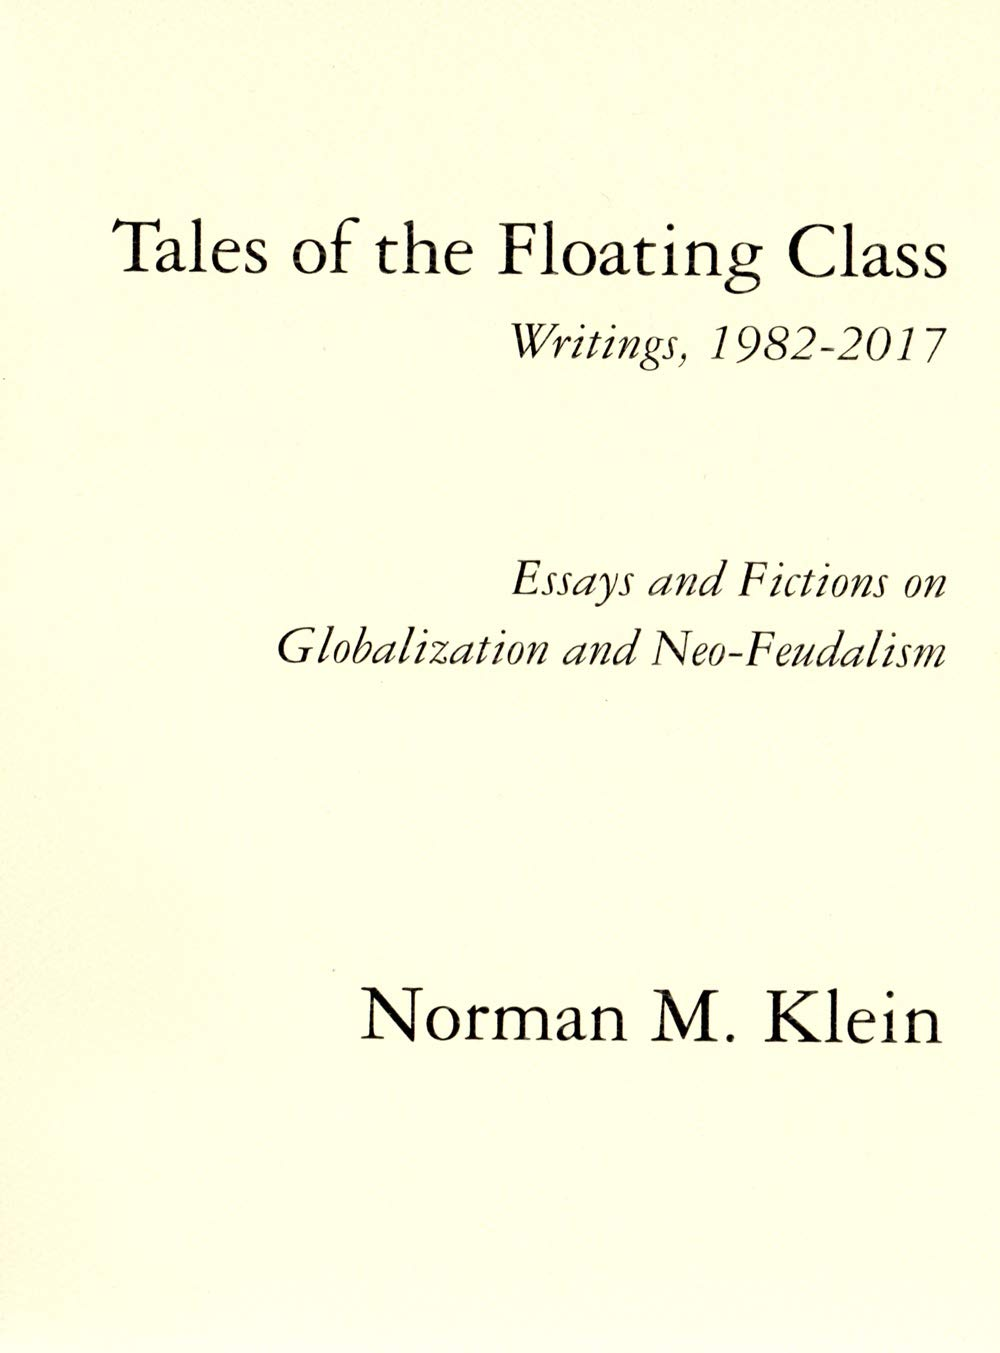 Essay Thesis Examples Tales Of The Floating Class Writings  Essays And Fictions On  Globalization And Neo Feudalism Norman M Klein   Amazoncom Books Sample Essays For High School Students also Essay On Science And Religion Tales Of The Floating Class Writings  Essays And Fictions  Thesis Argumentative Essay